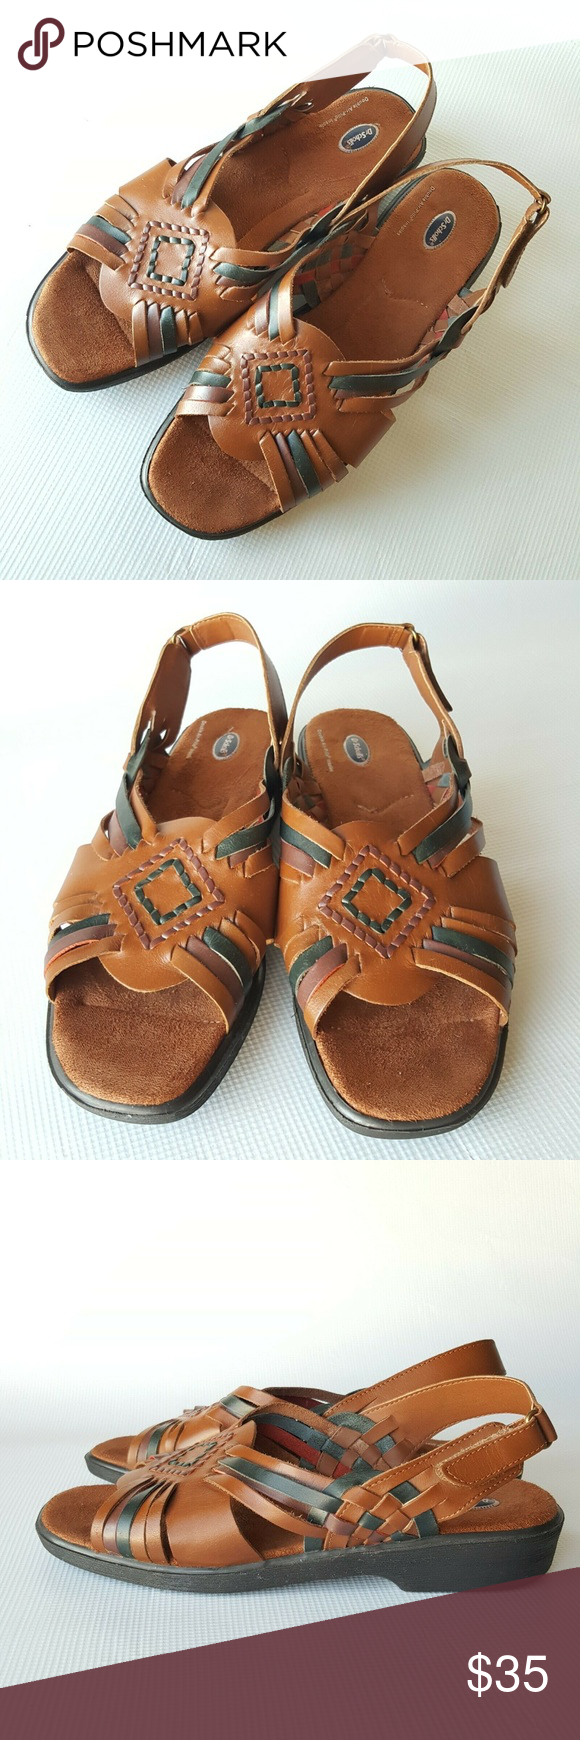 f52492909366 Dr. Scholl s Brown Leather Huarache Sandals Sz.11 Dr. Scholl s Women s  Brown Leather Huarache Slingback Sandals Strappy Size 11 Dr. Scholl s Shoes  Sandals